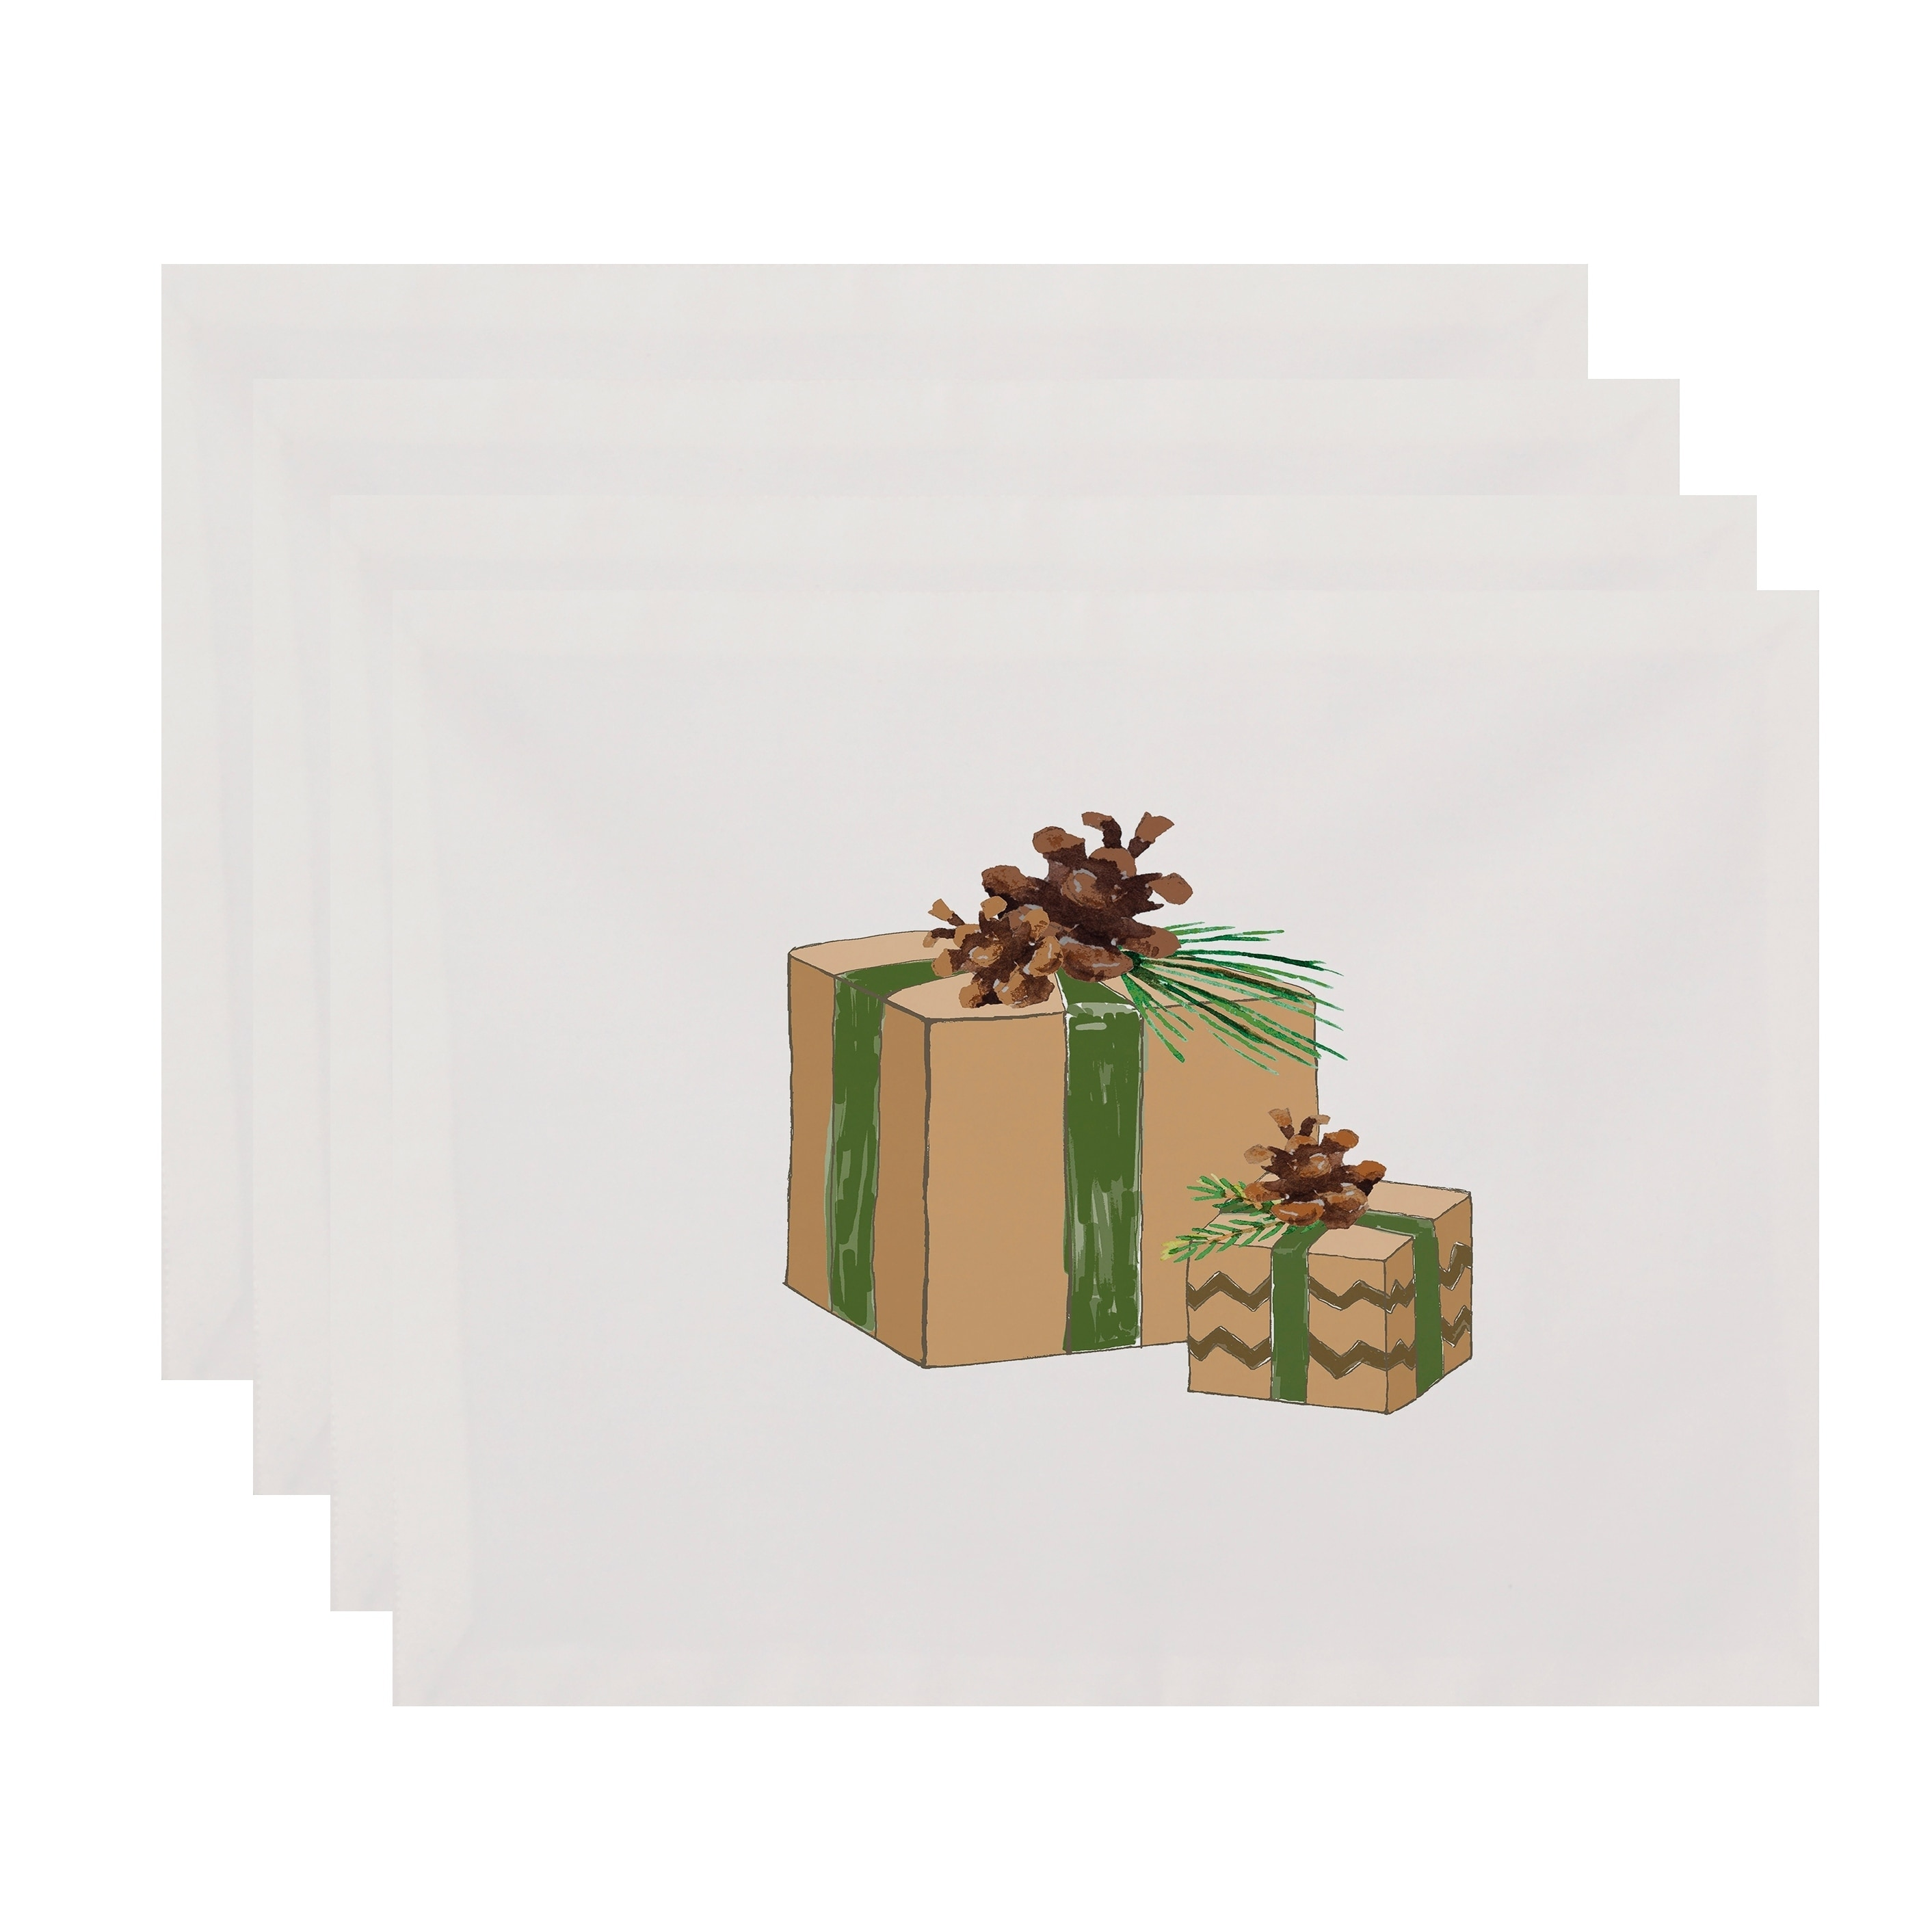 f794cde01052 Shop Nature s Gift 18 x 14 Inch Holiday Print Placemat (Set of 4 ...